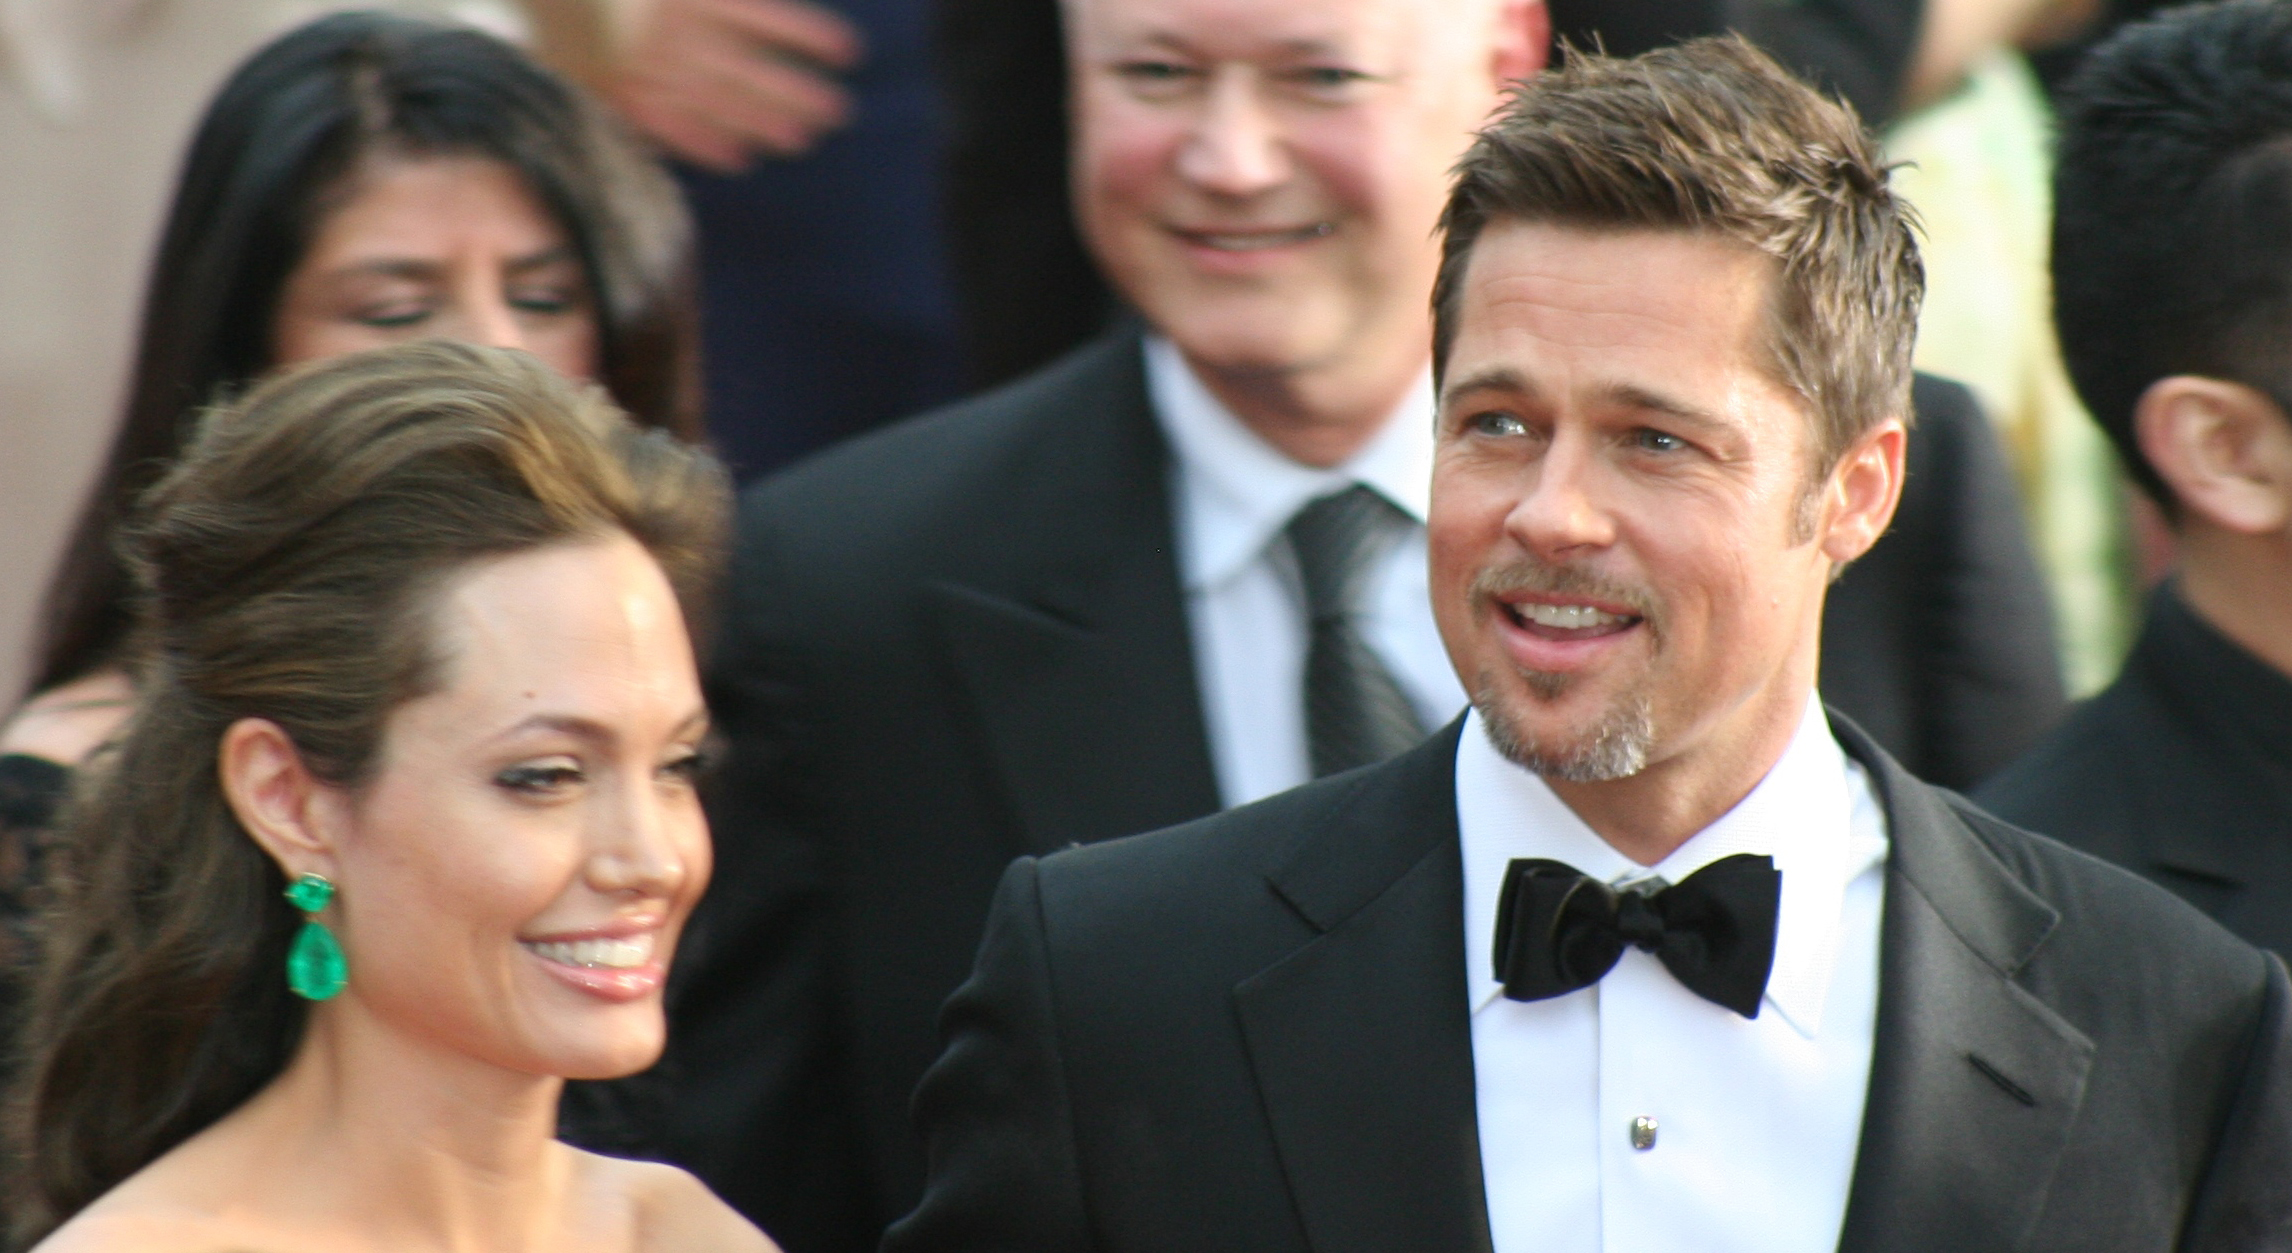 Jolie with her husband Brad Pitt, at the Academy Awards in February 2009, where both were nominated for a leading performance